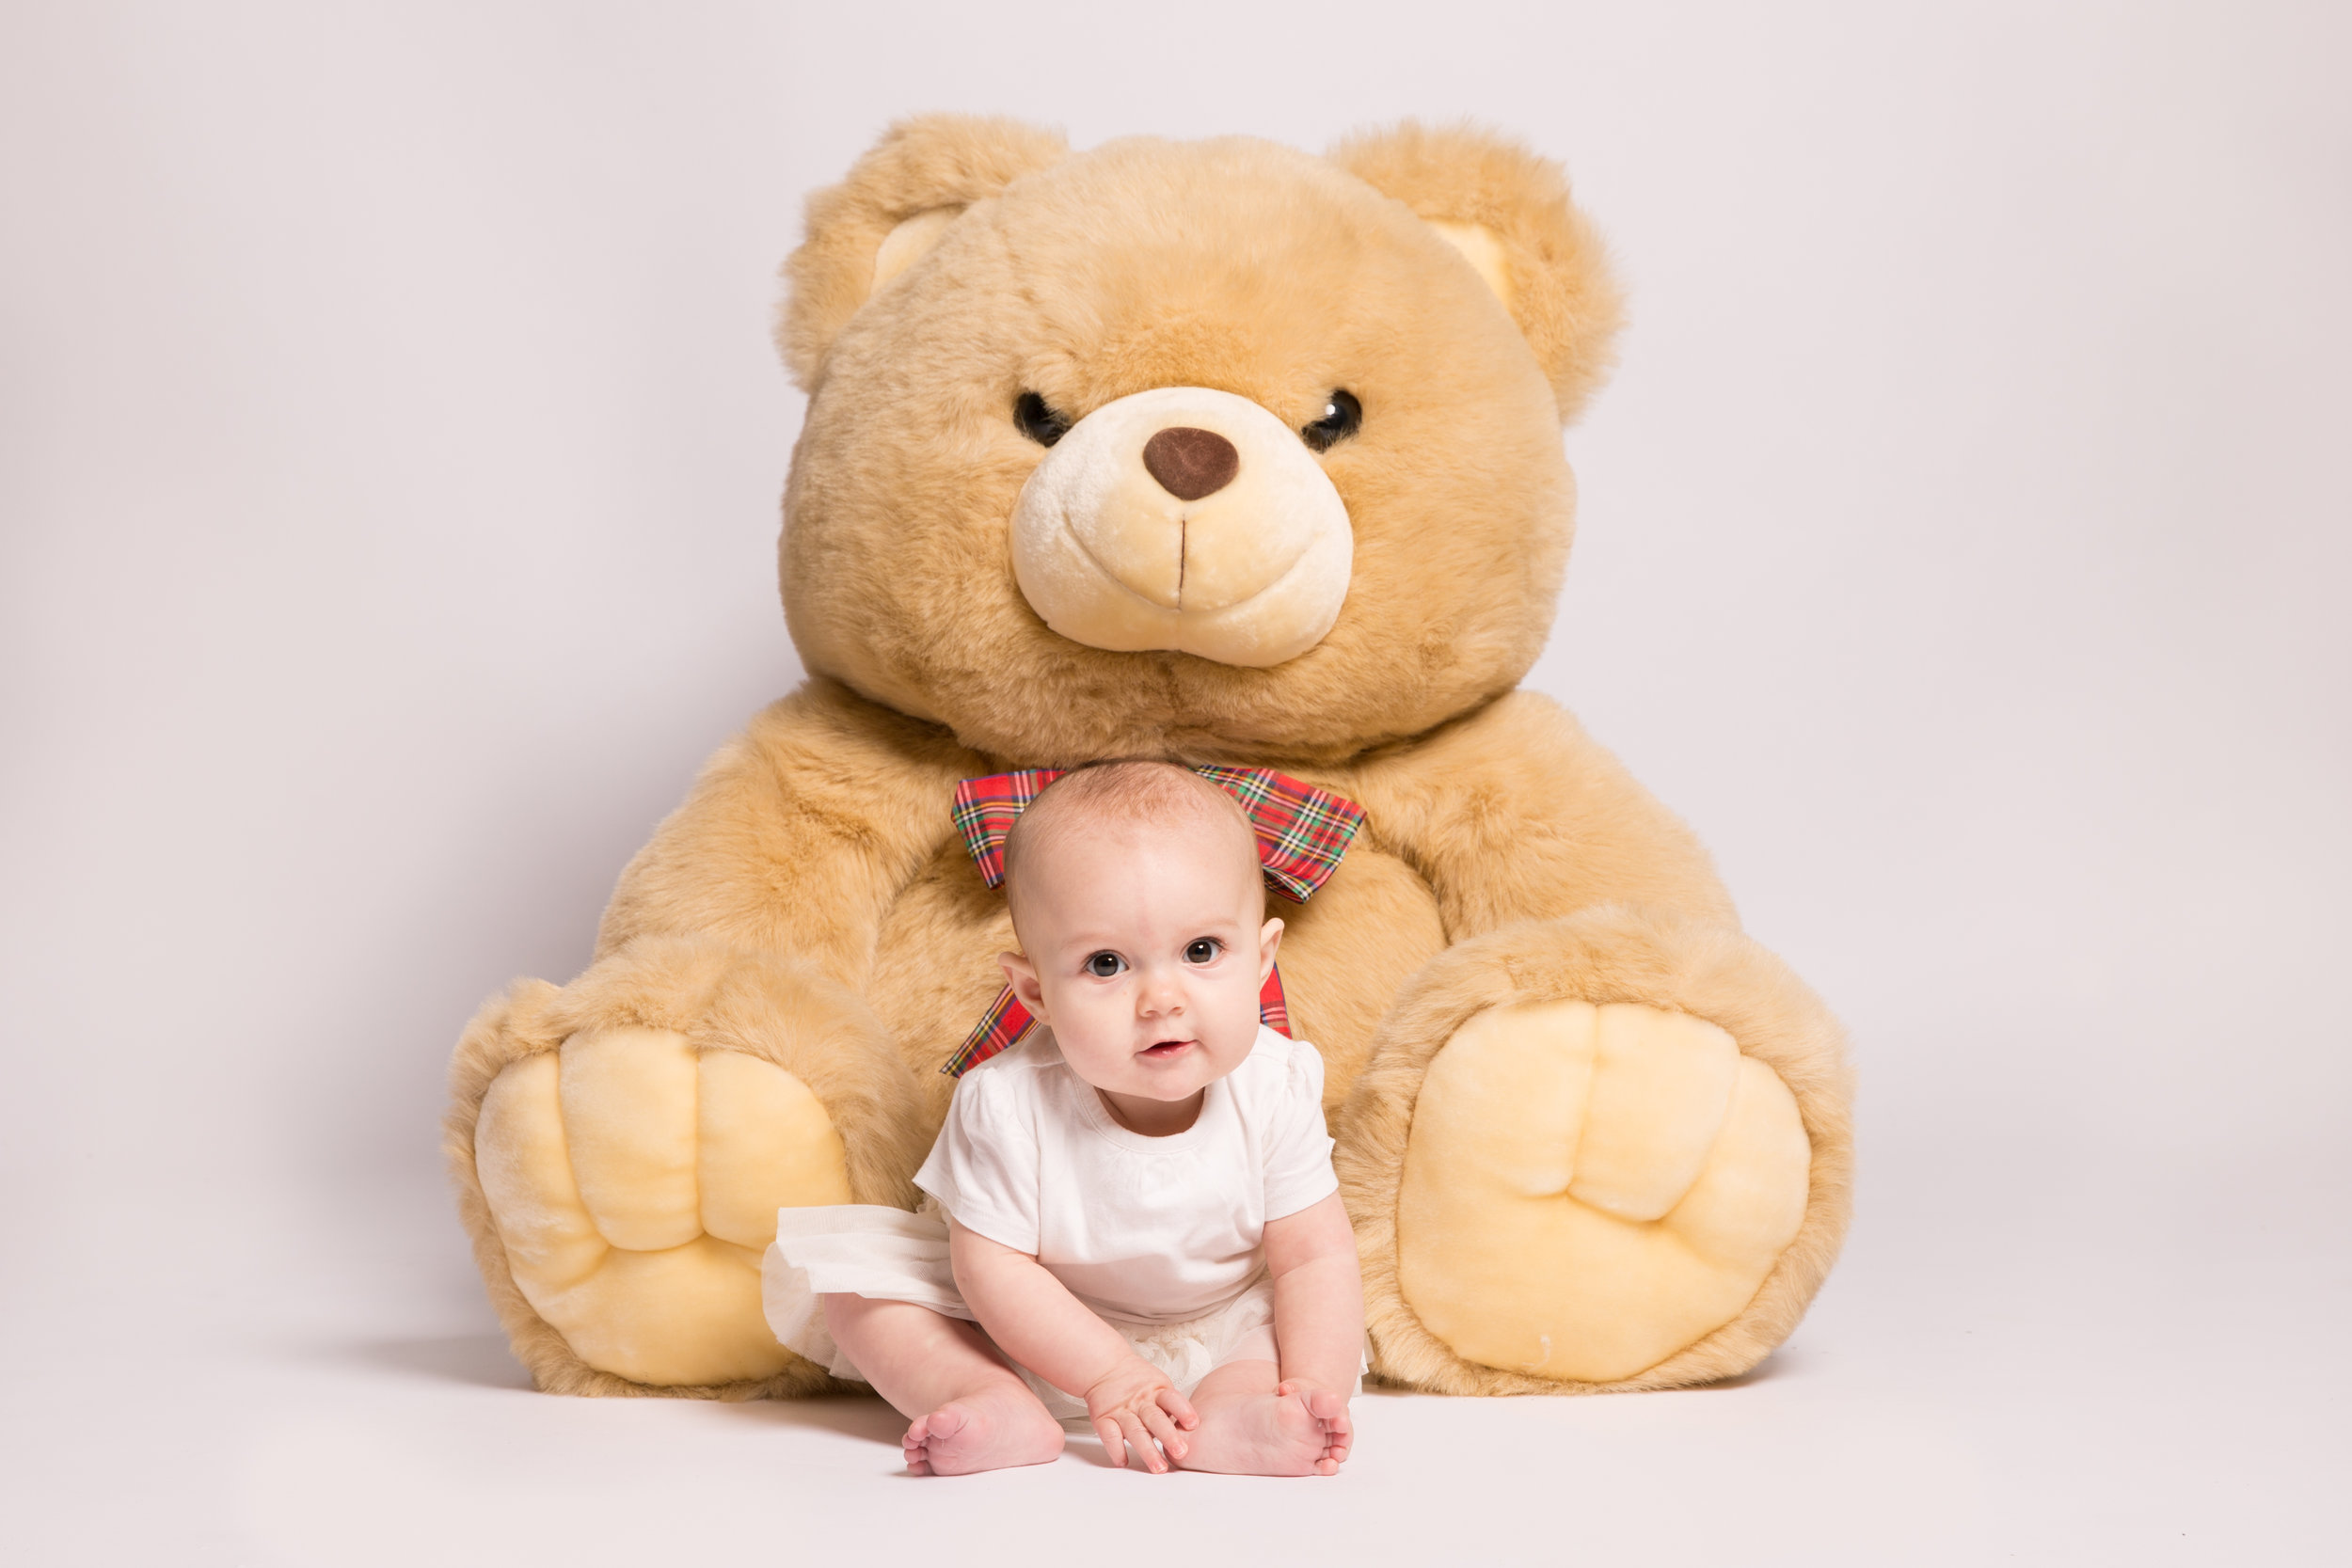 big-bear-small-baby-photo